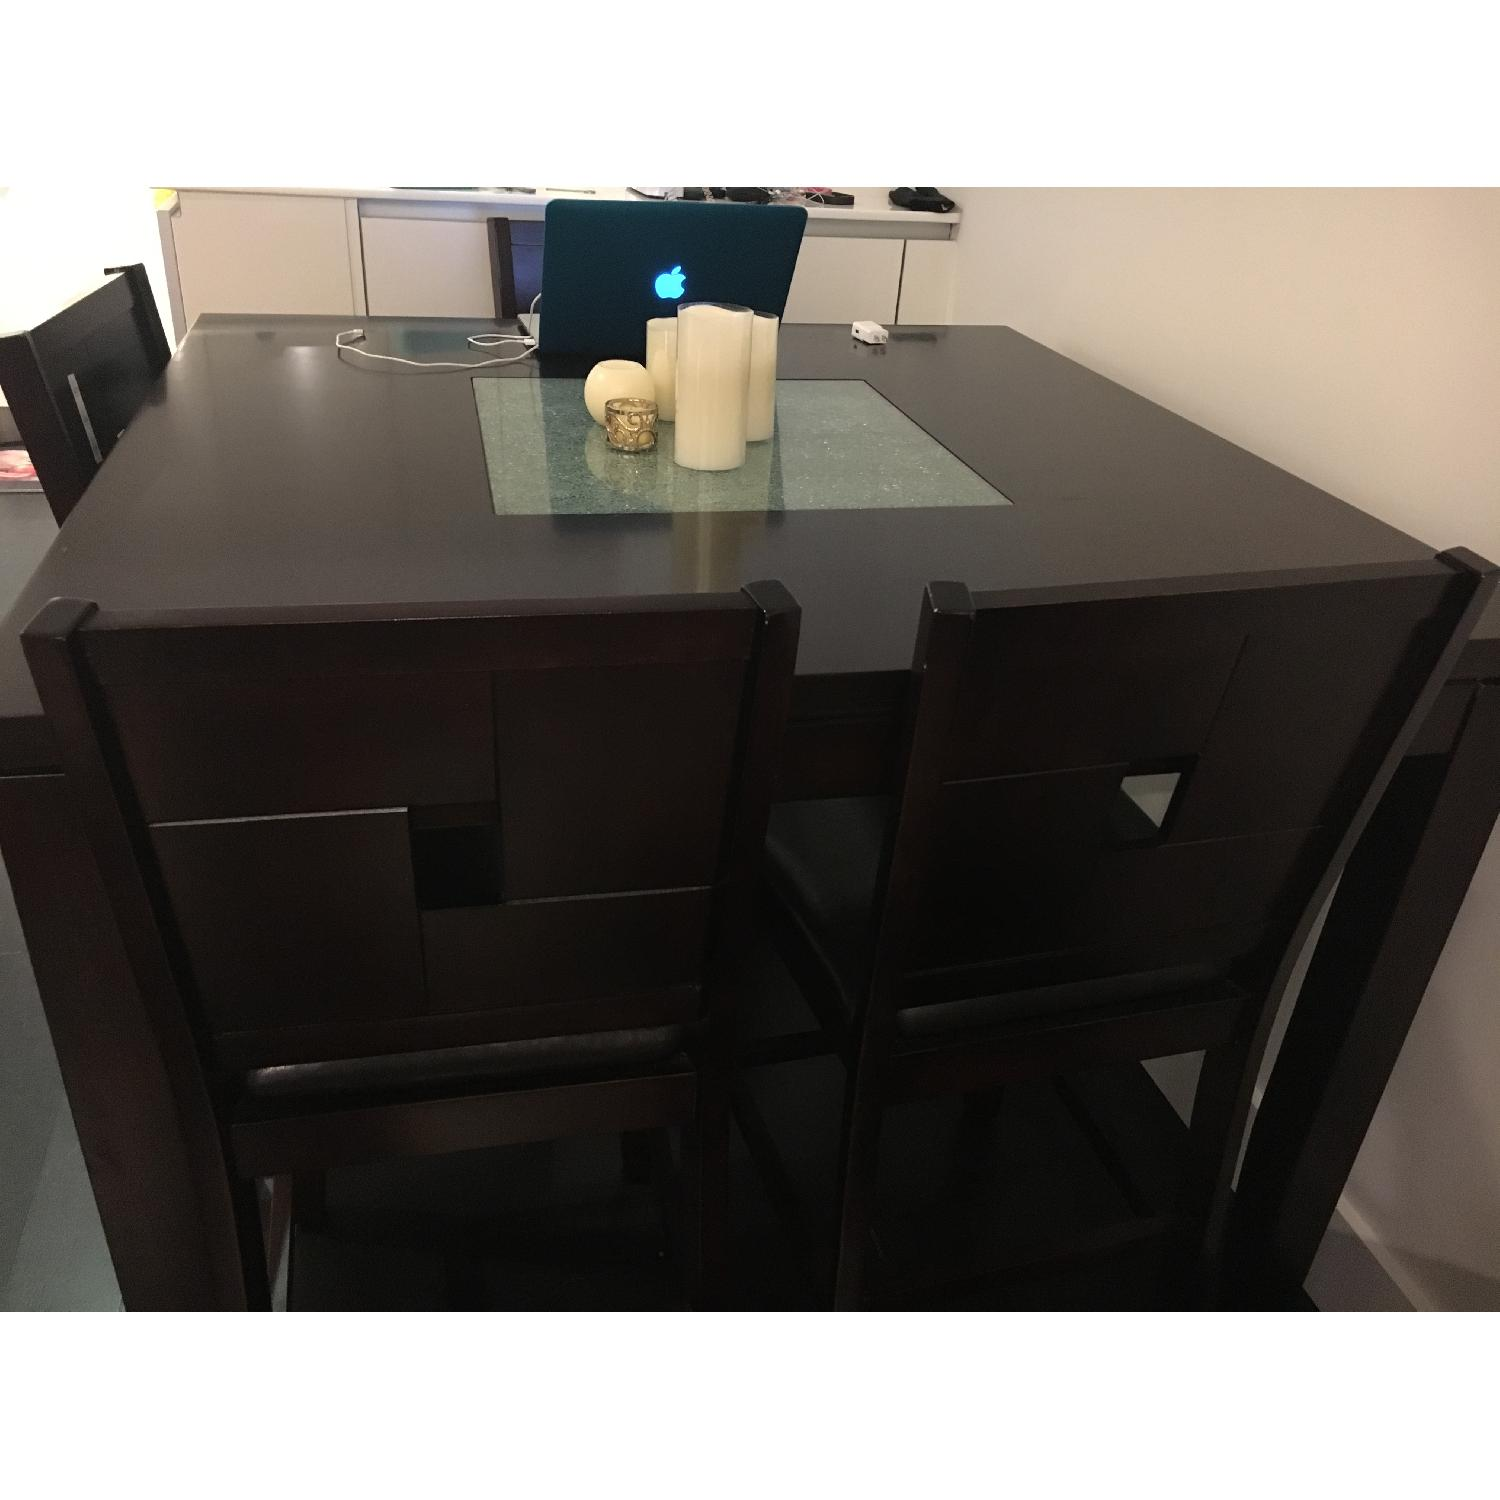 Dining Table w/ 4 Chairs + 1 Bench - image-1